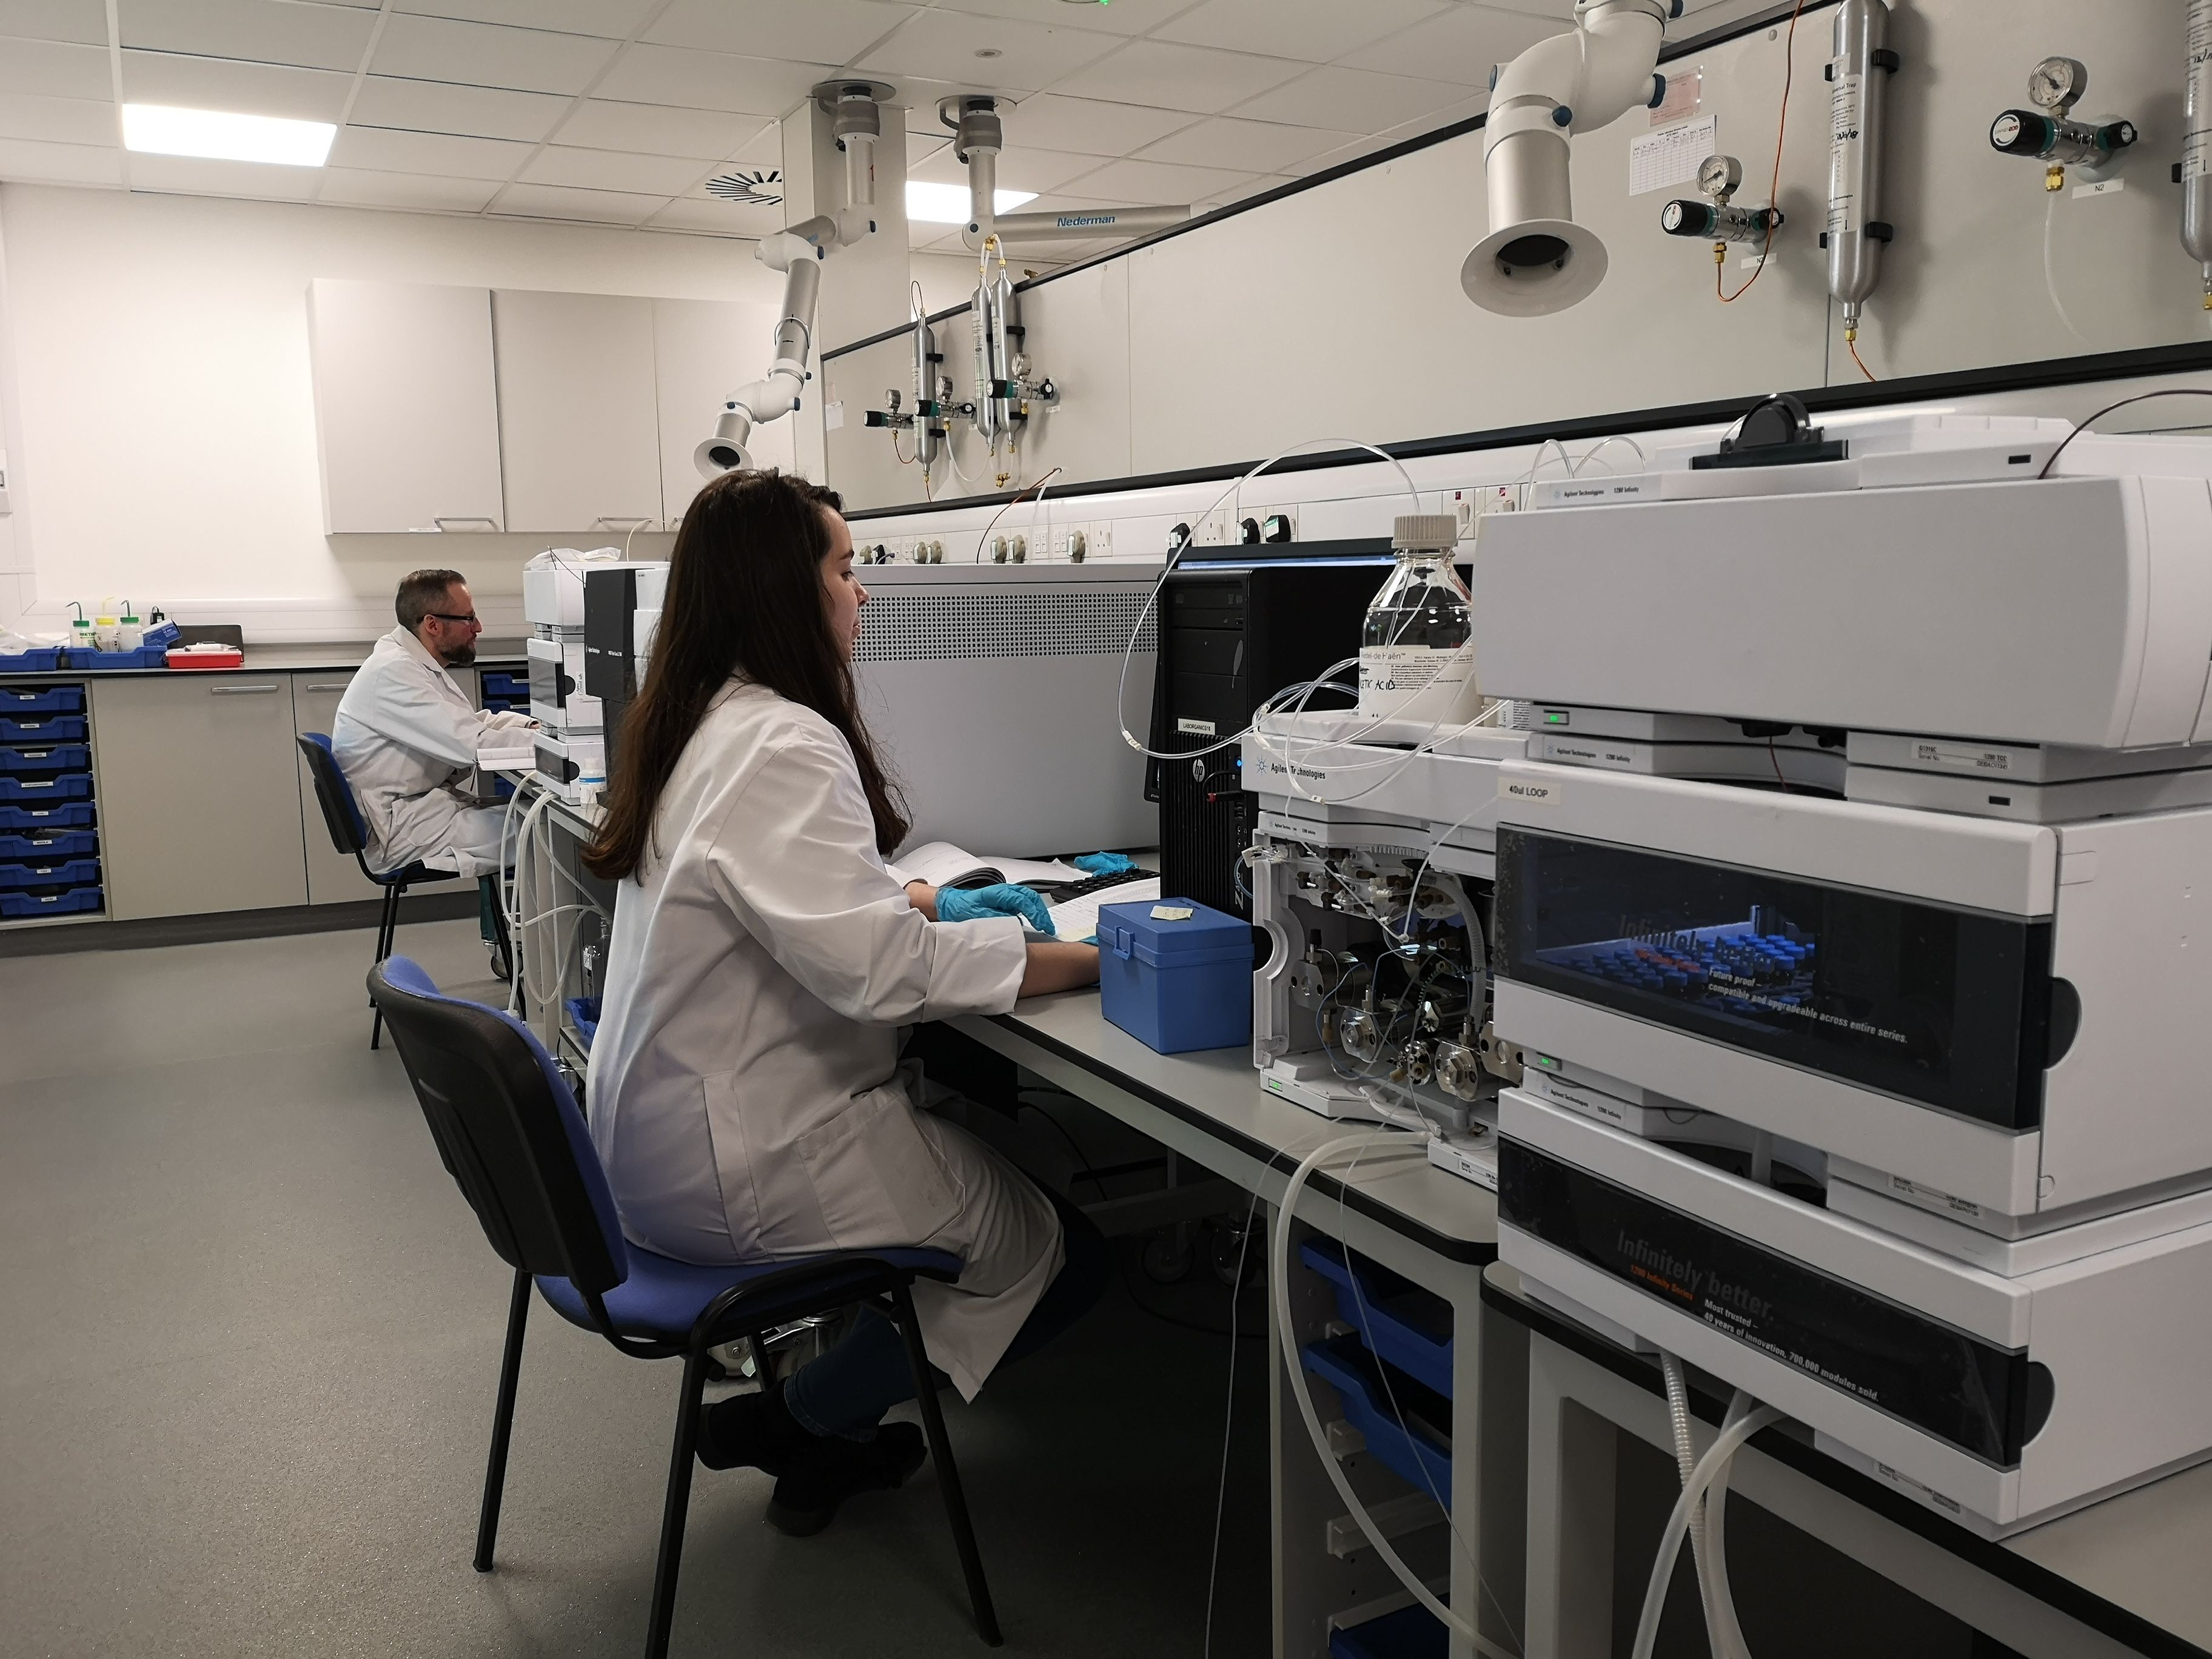 Technicians working in the lab